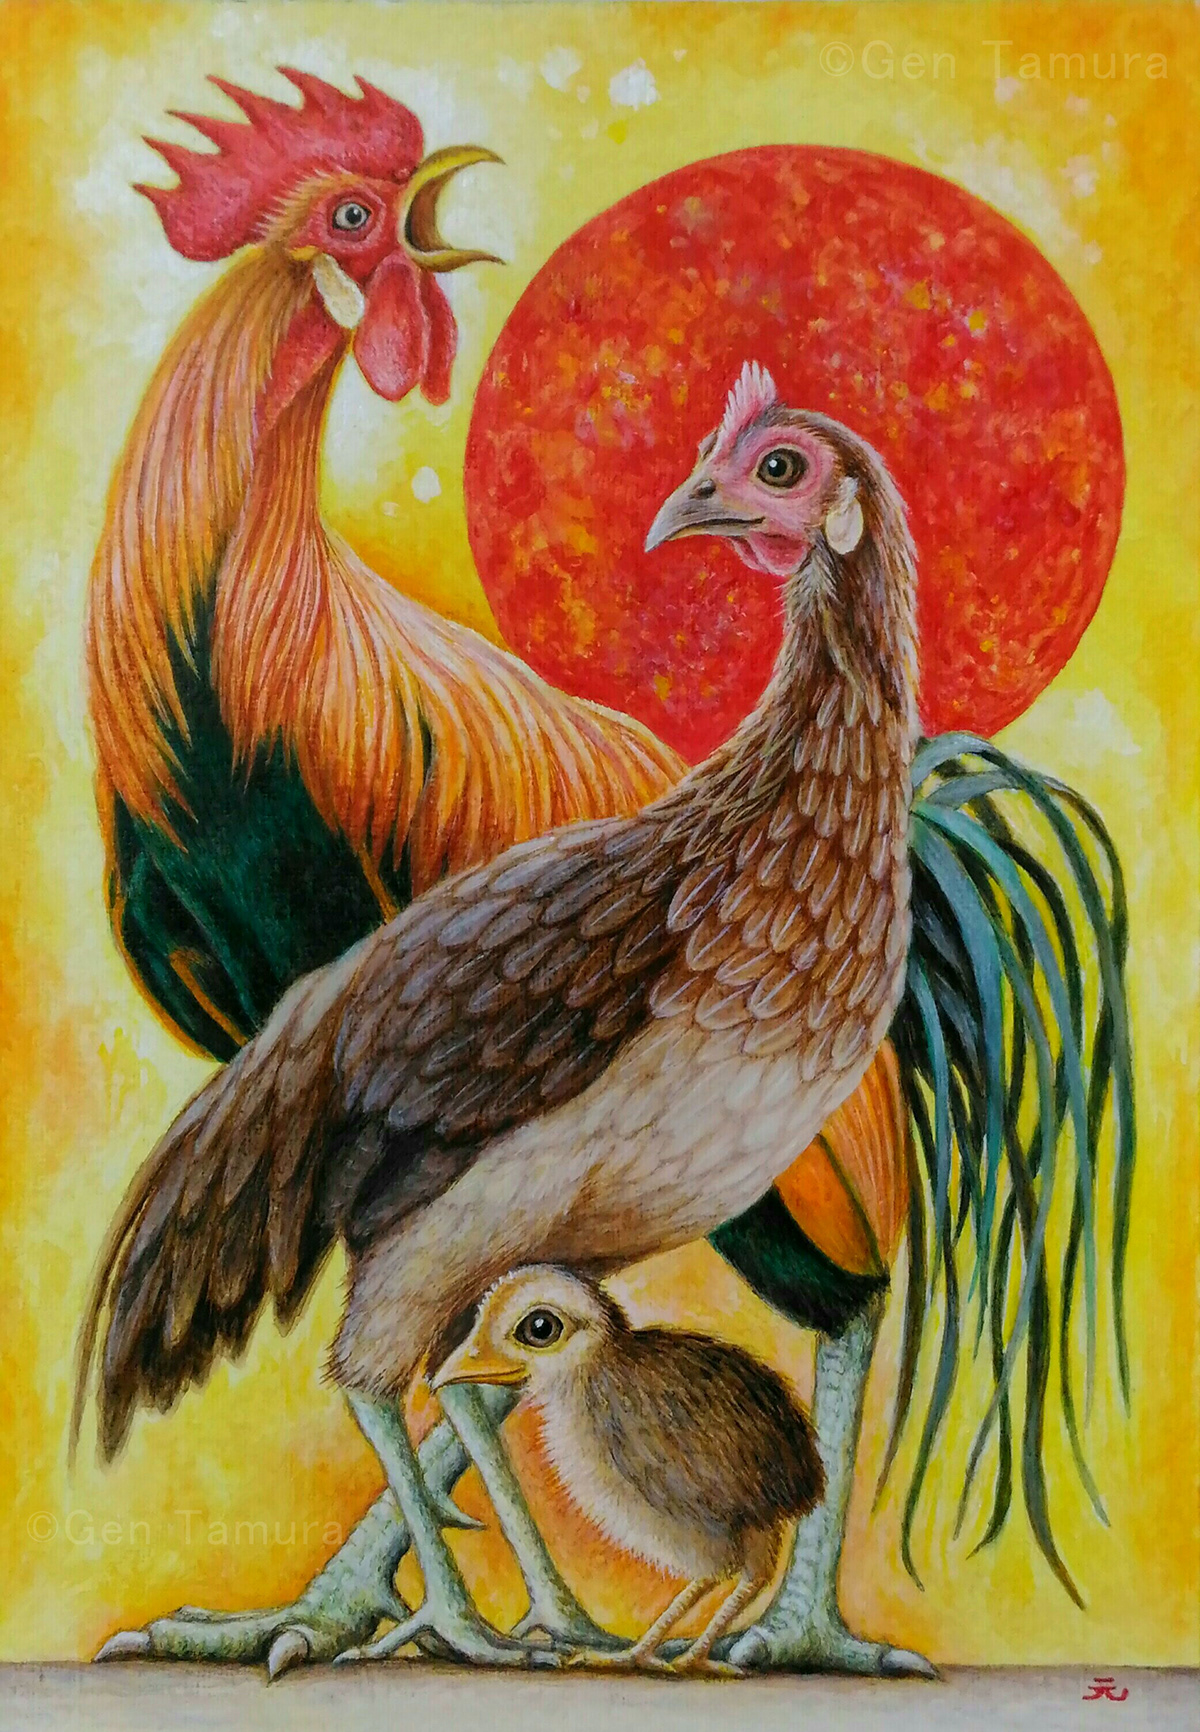 An illustration of Totenko Roosters for the New Year's card of 2017 (Year of the Rooster).